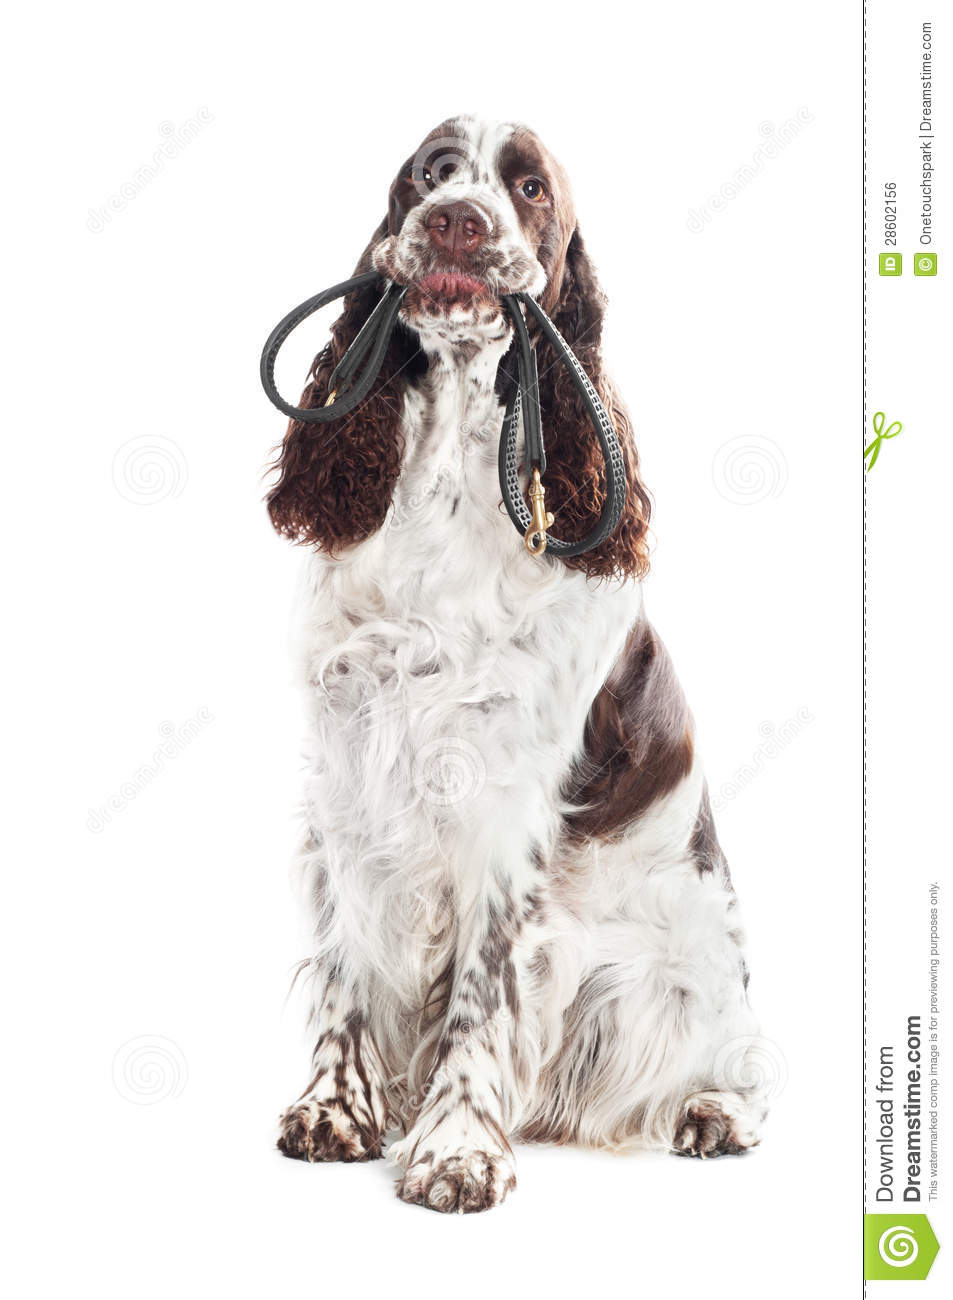 springer spaniel dog holding a leash in its mouth royalty